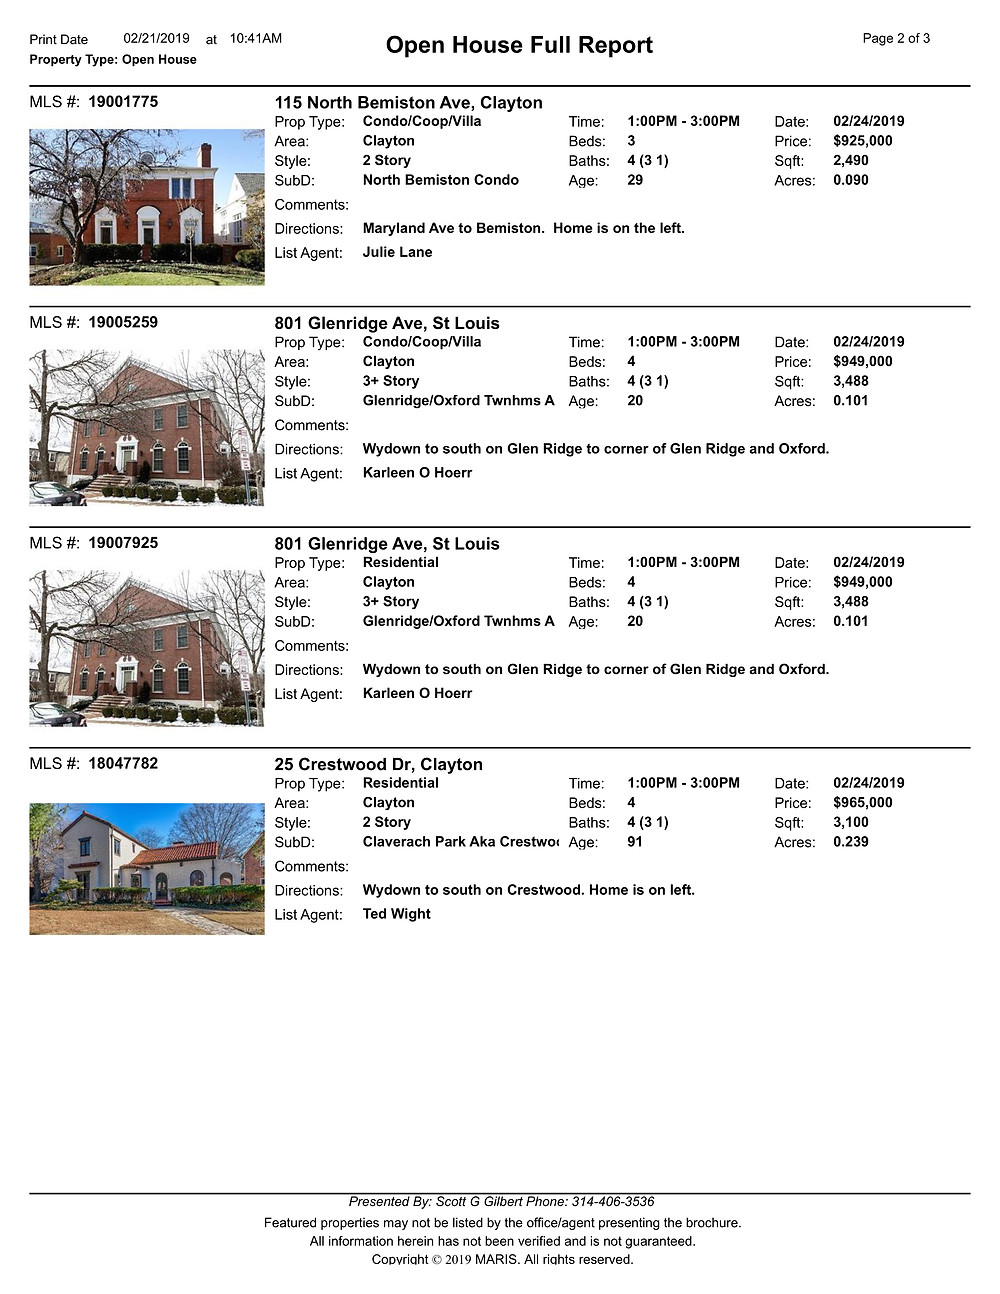 Clayton Open Houses